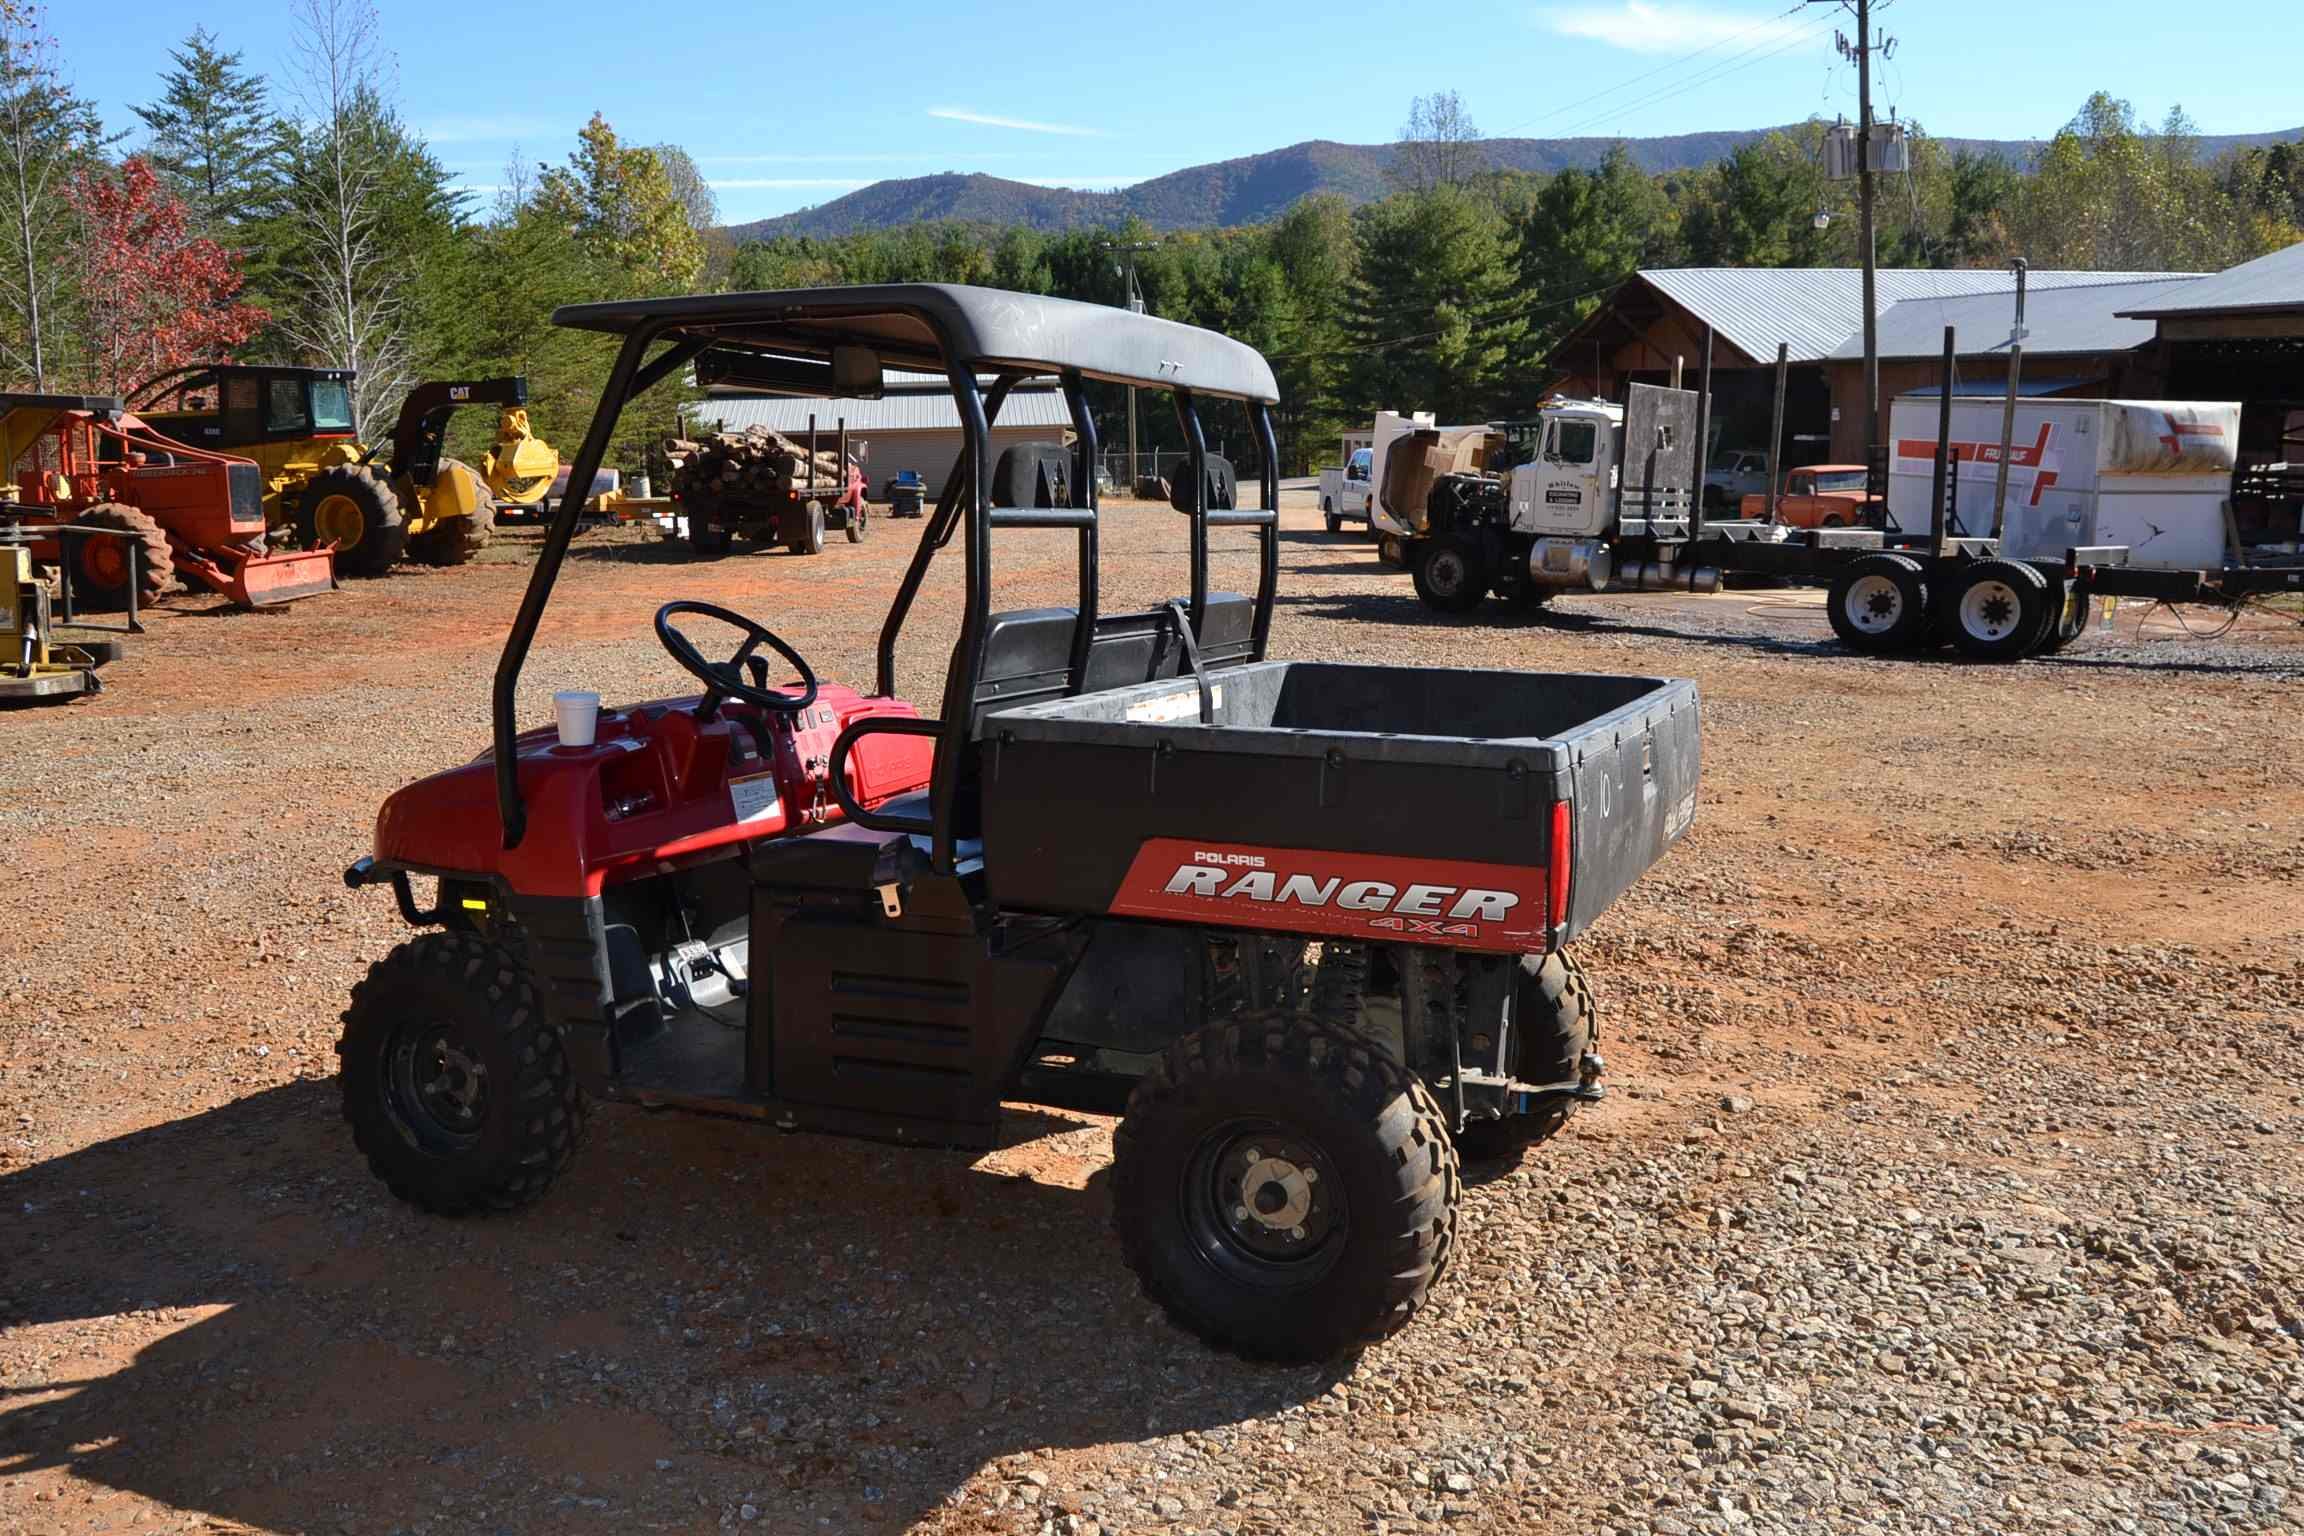 2006 Polaris Ranger 500 4x4 Side By Side Atv W  633 Hours